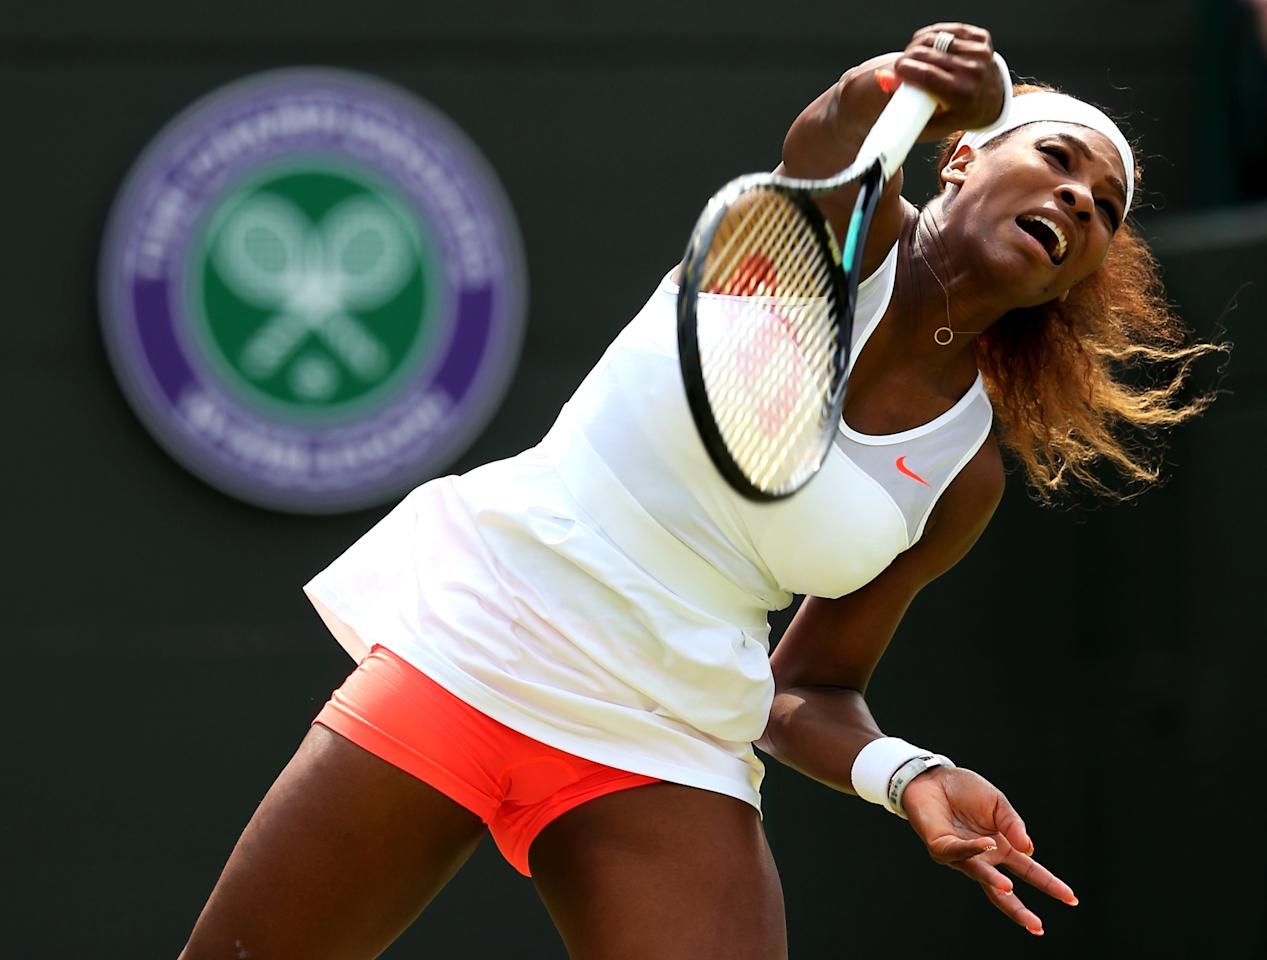 LONDON, ENGLAND - JUNE 27: Serena Williams of the United States of America serves during the Ladies' Singles second round match against Caroline Garcia of France on day four of the Wimbledon Lawn Tennis Championships at the All England Lawn Tennis and Croquet Club on June 27, 2013 in London, England. (Photo by Julian Finney/Getty Images)